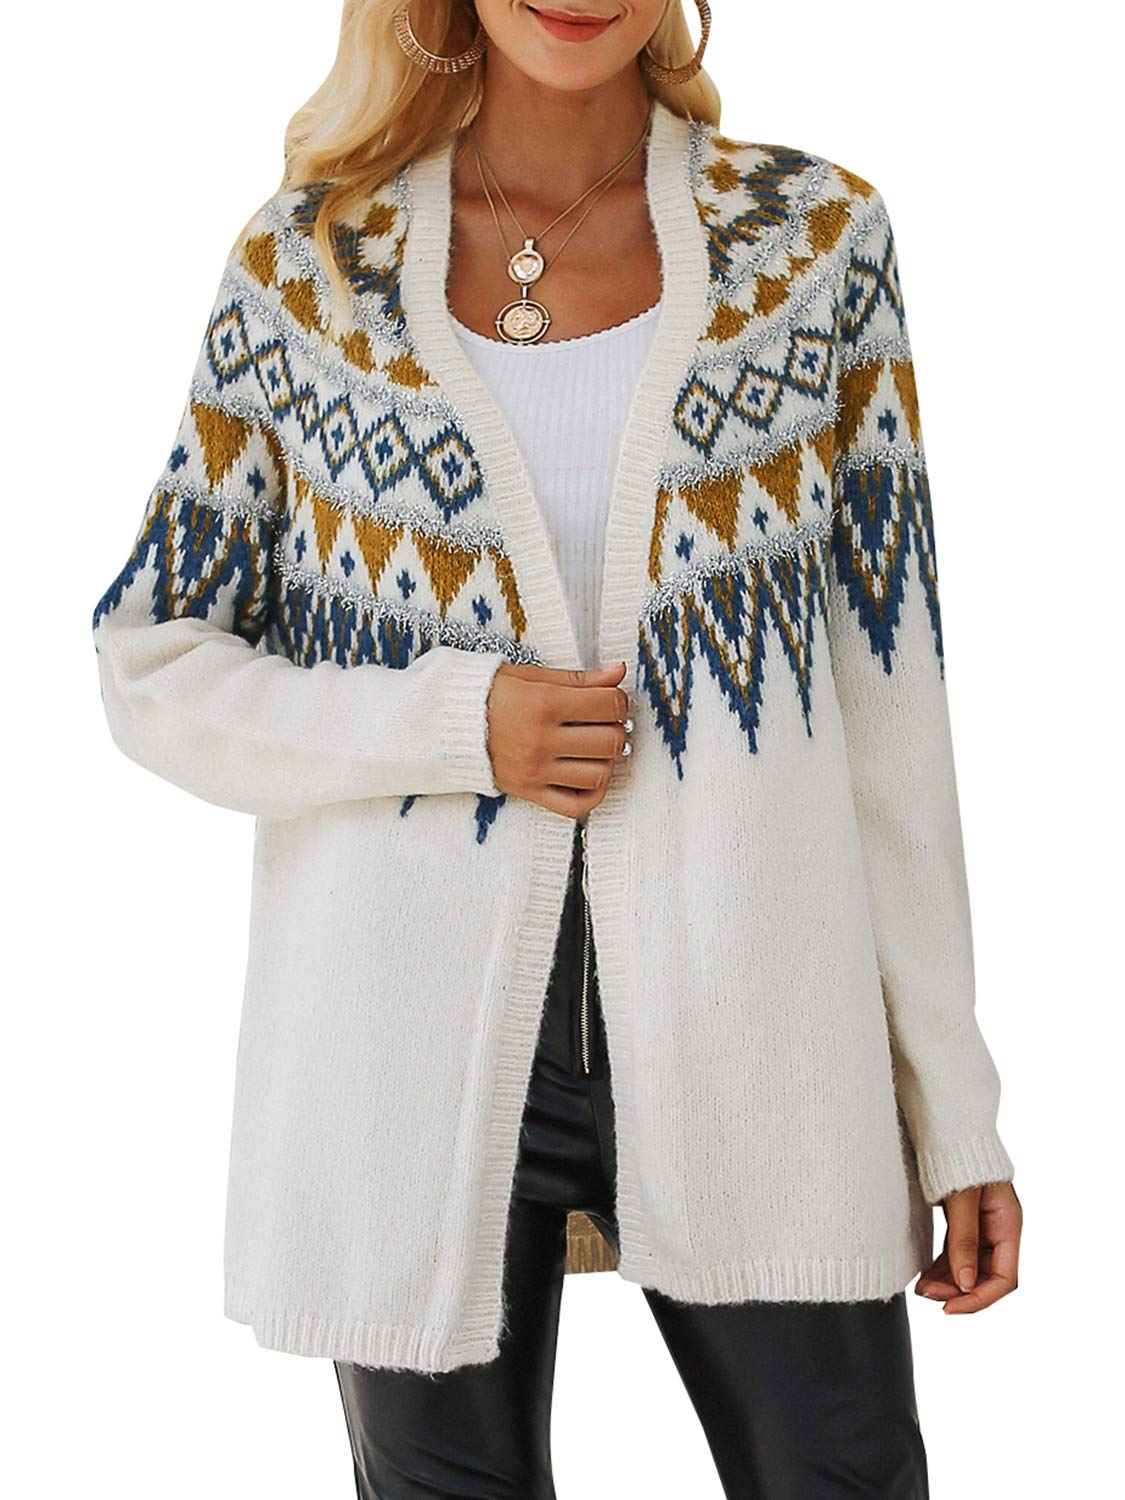 BerryGo Women's Fashion Knitted Cardigan Geometric Open Front Sweater Coat White,One Size